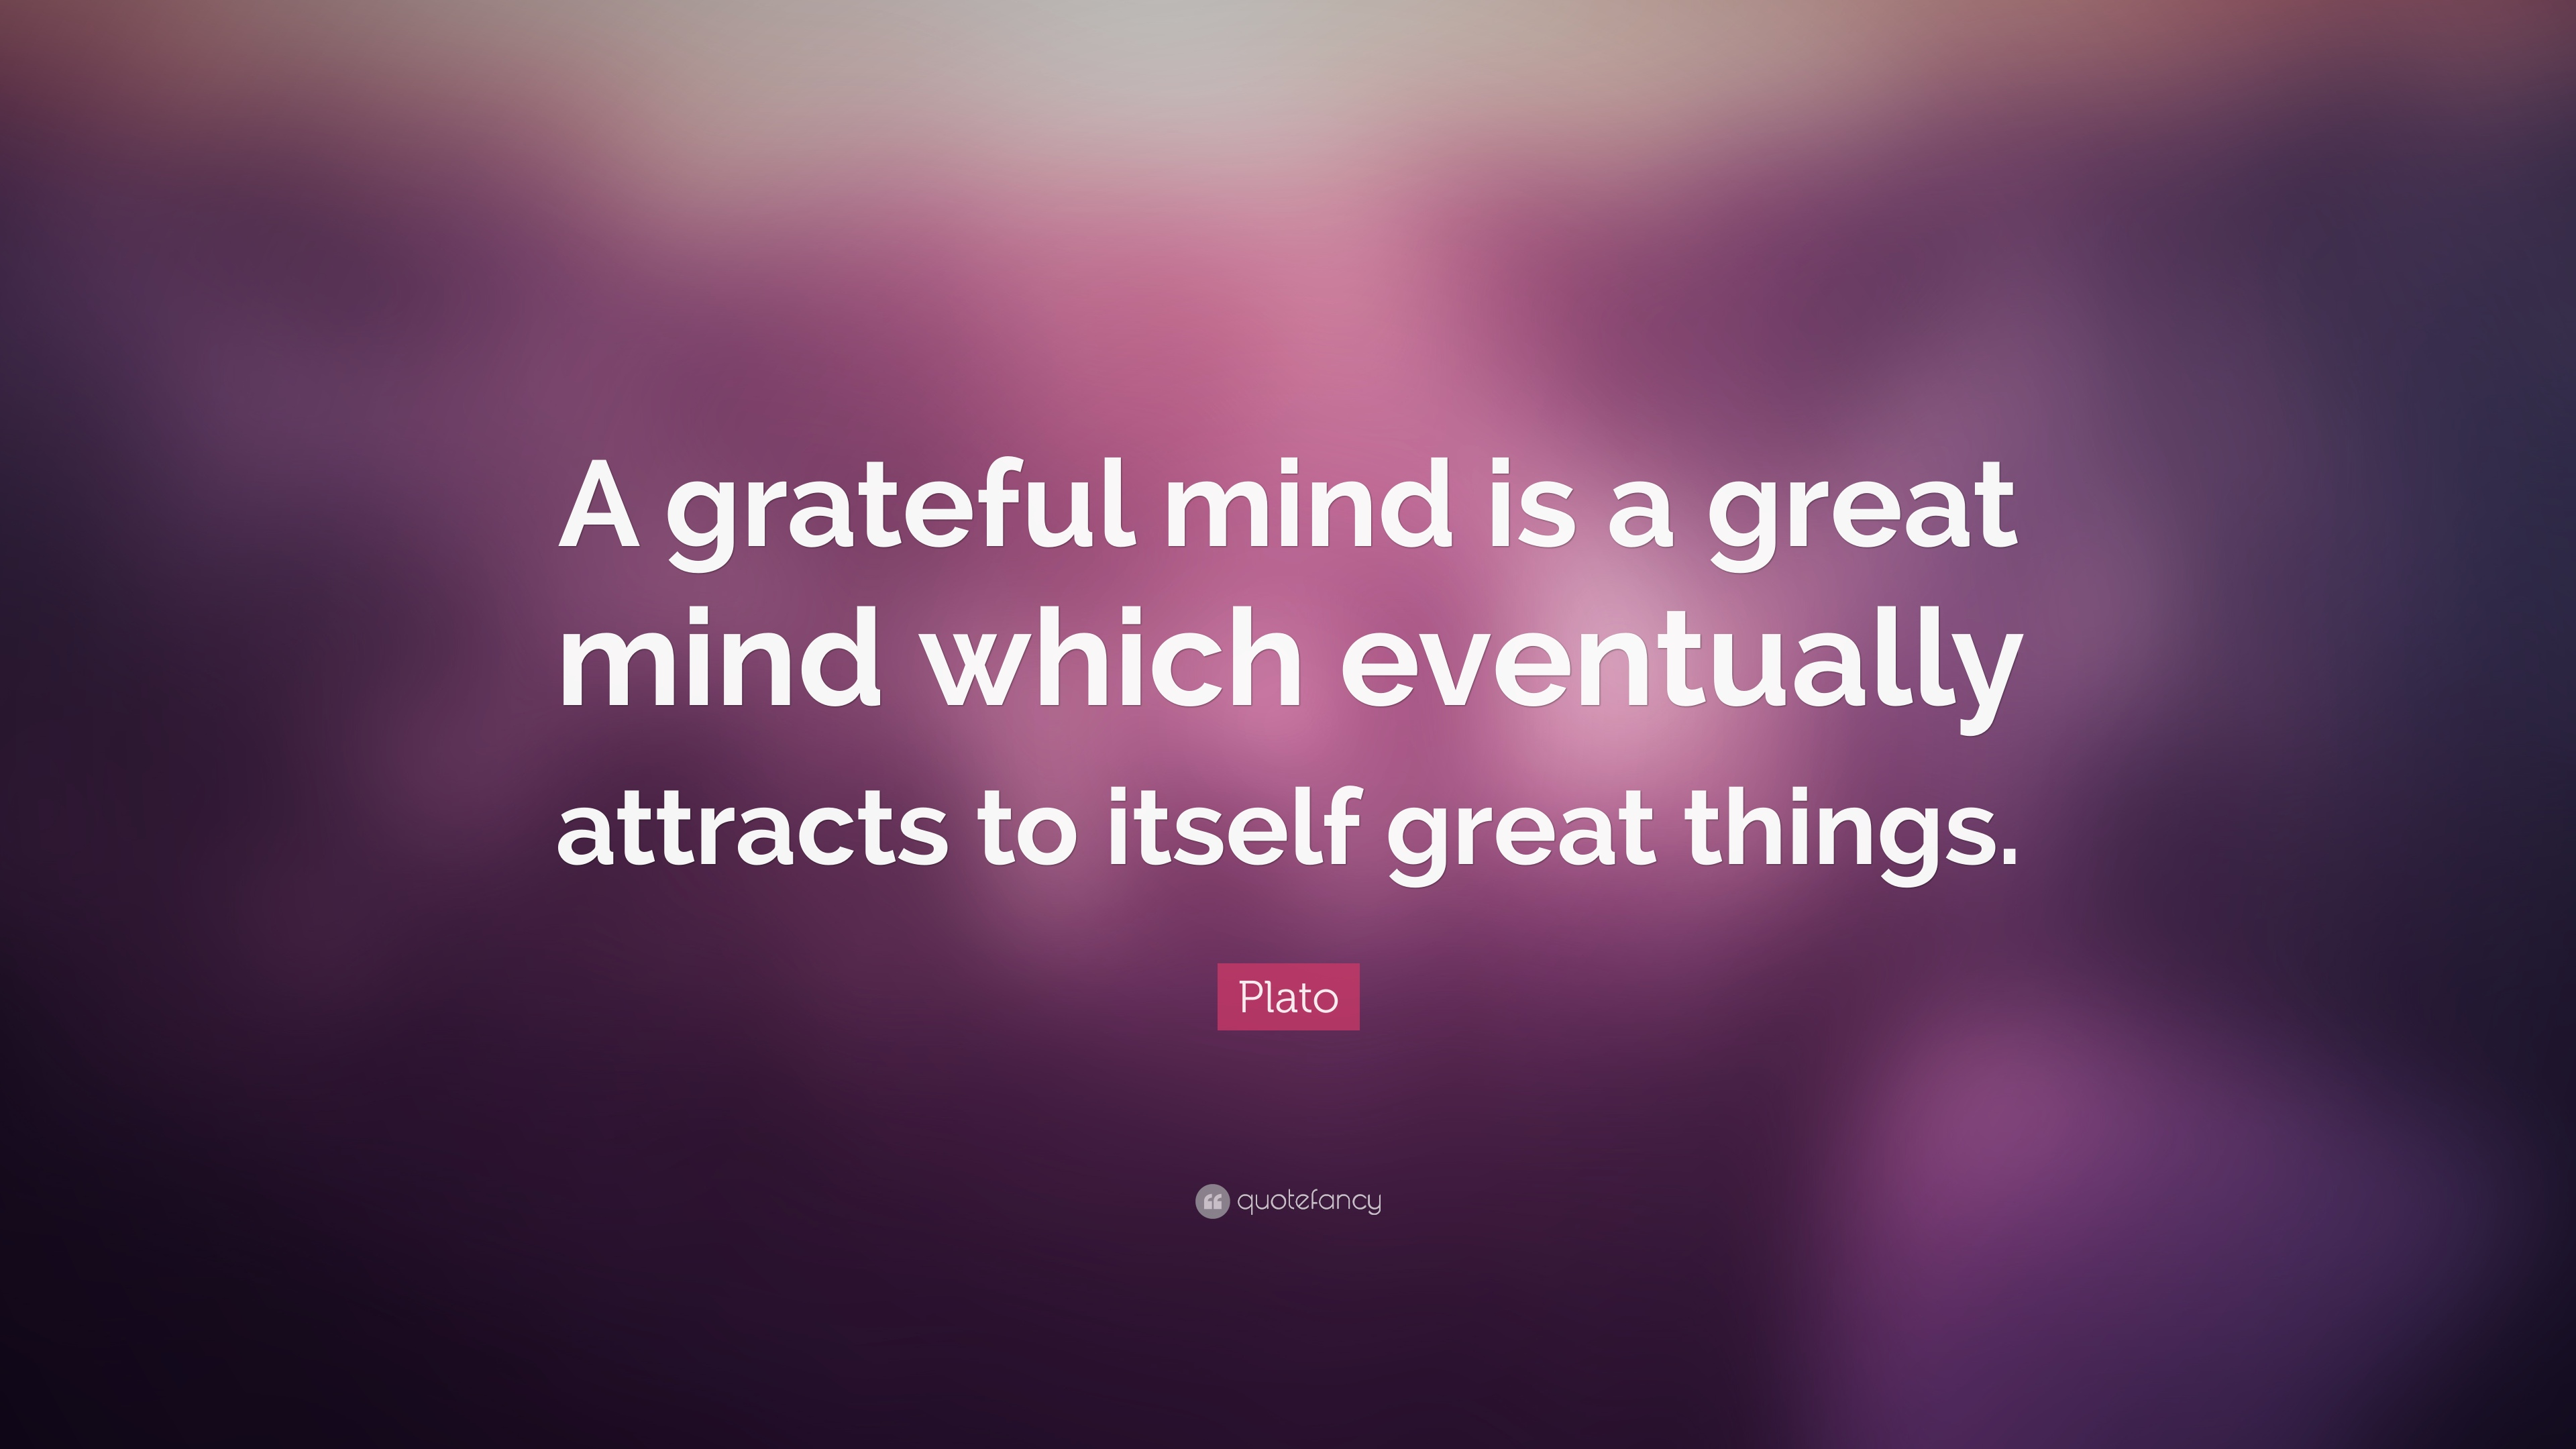 Gratitude Quotes: U201cA Grateful Mind Is A Great Mind Which Eventually  Attracts To Itself